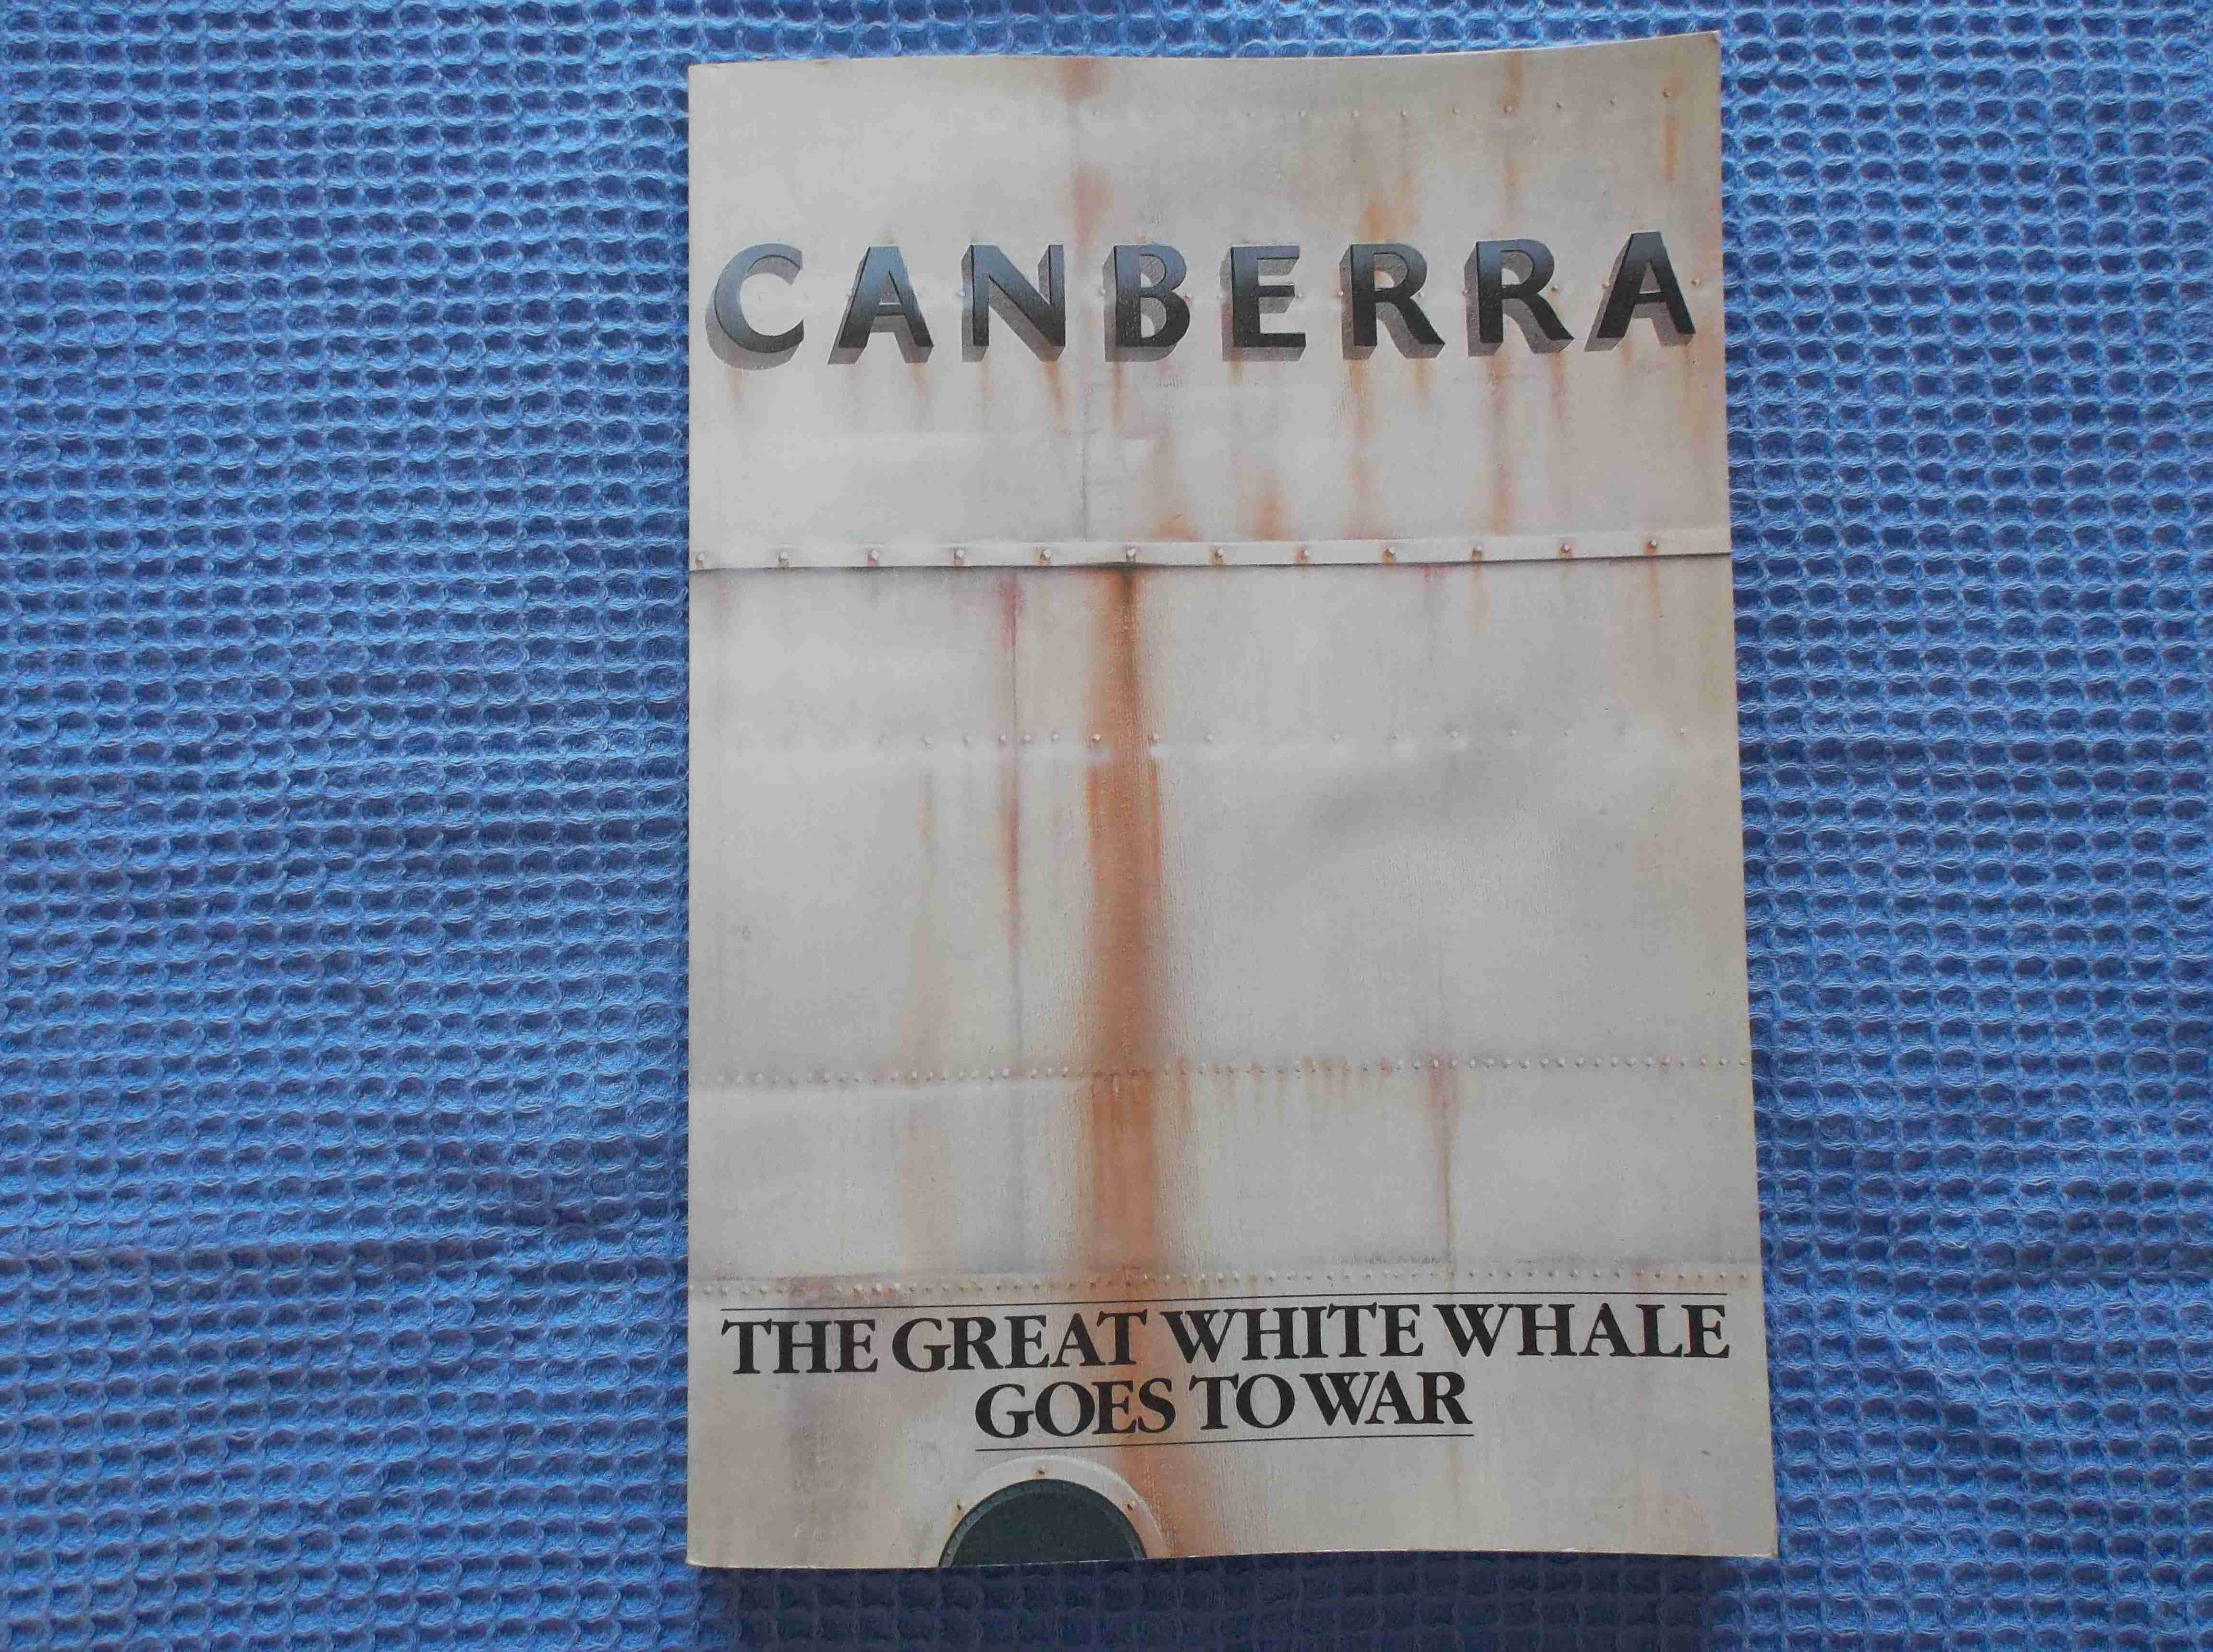 BOOK ENTITLED CANBERRA 'THE GREAT WHITE WHALE GOES TO WAR' by LT CDR JL MUXWORTHY, RN